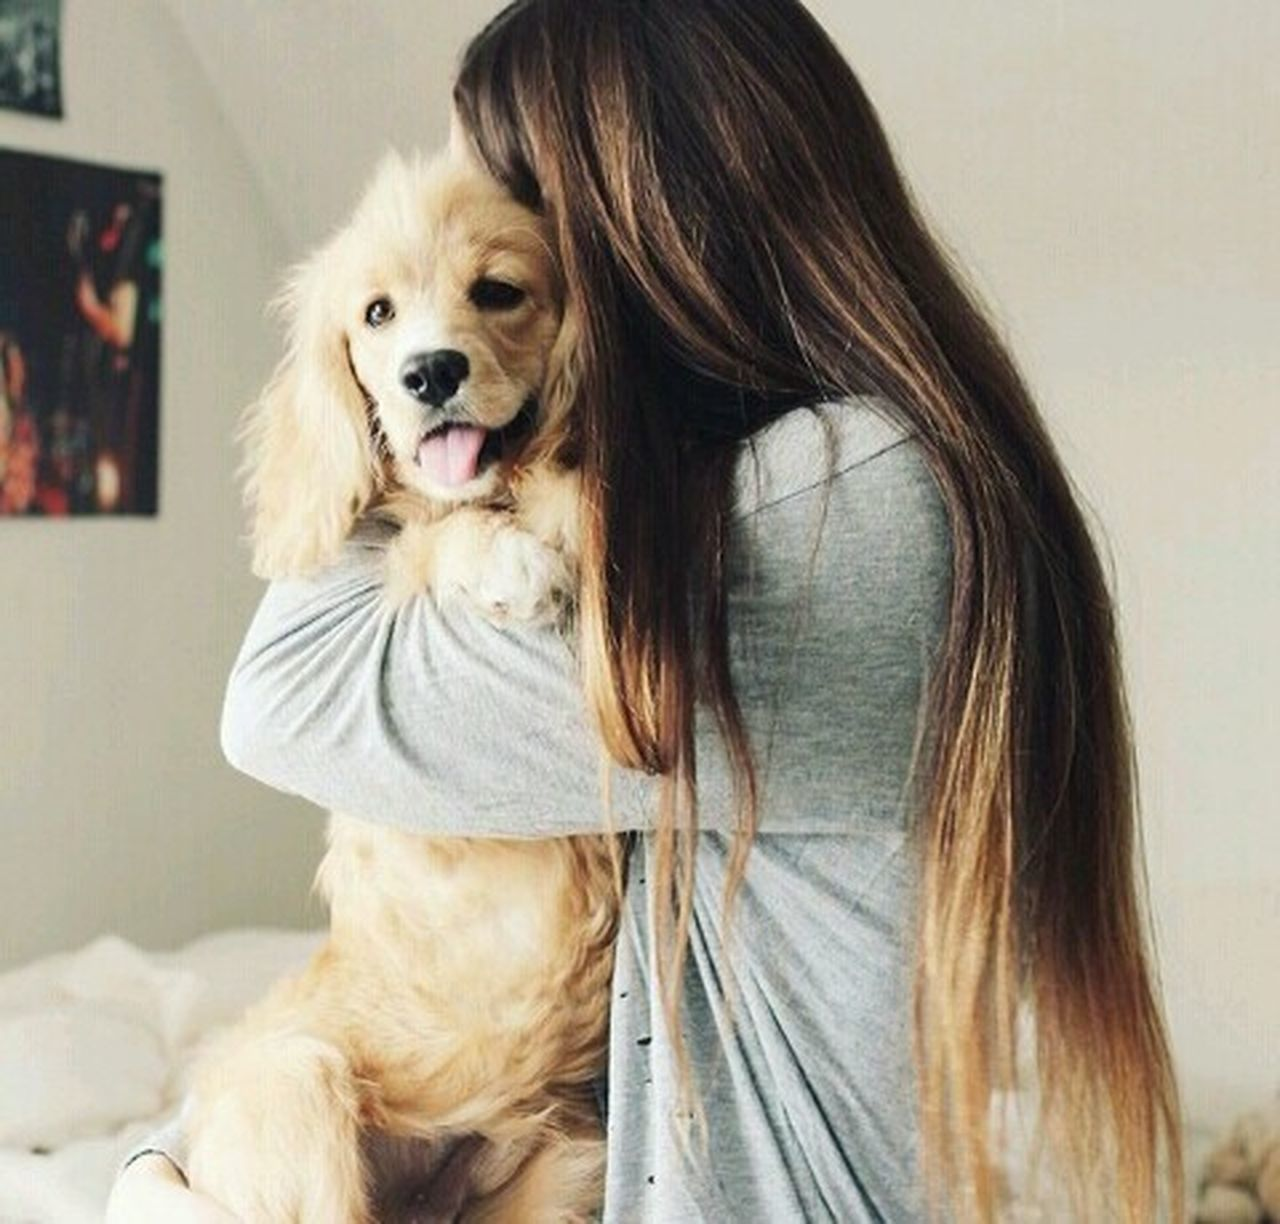 dog, pets, one animal, domestic animals, long hair, animal themes, one person, friendship, embracing, one woman only, portrait, only women, indoors, adult, people, adults only, day, mammal, close-up, young adult